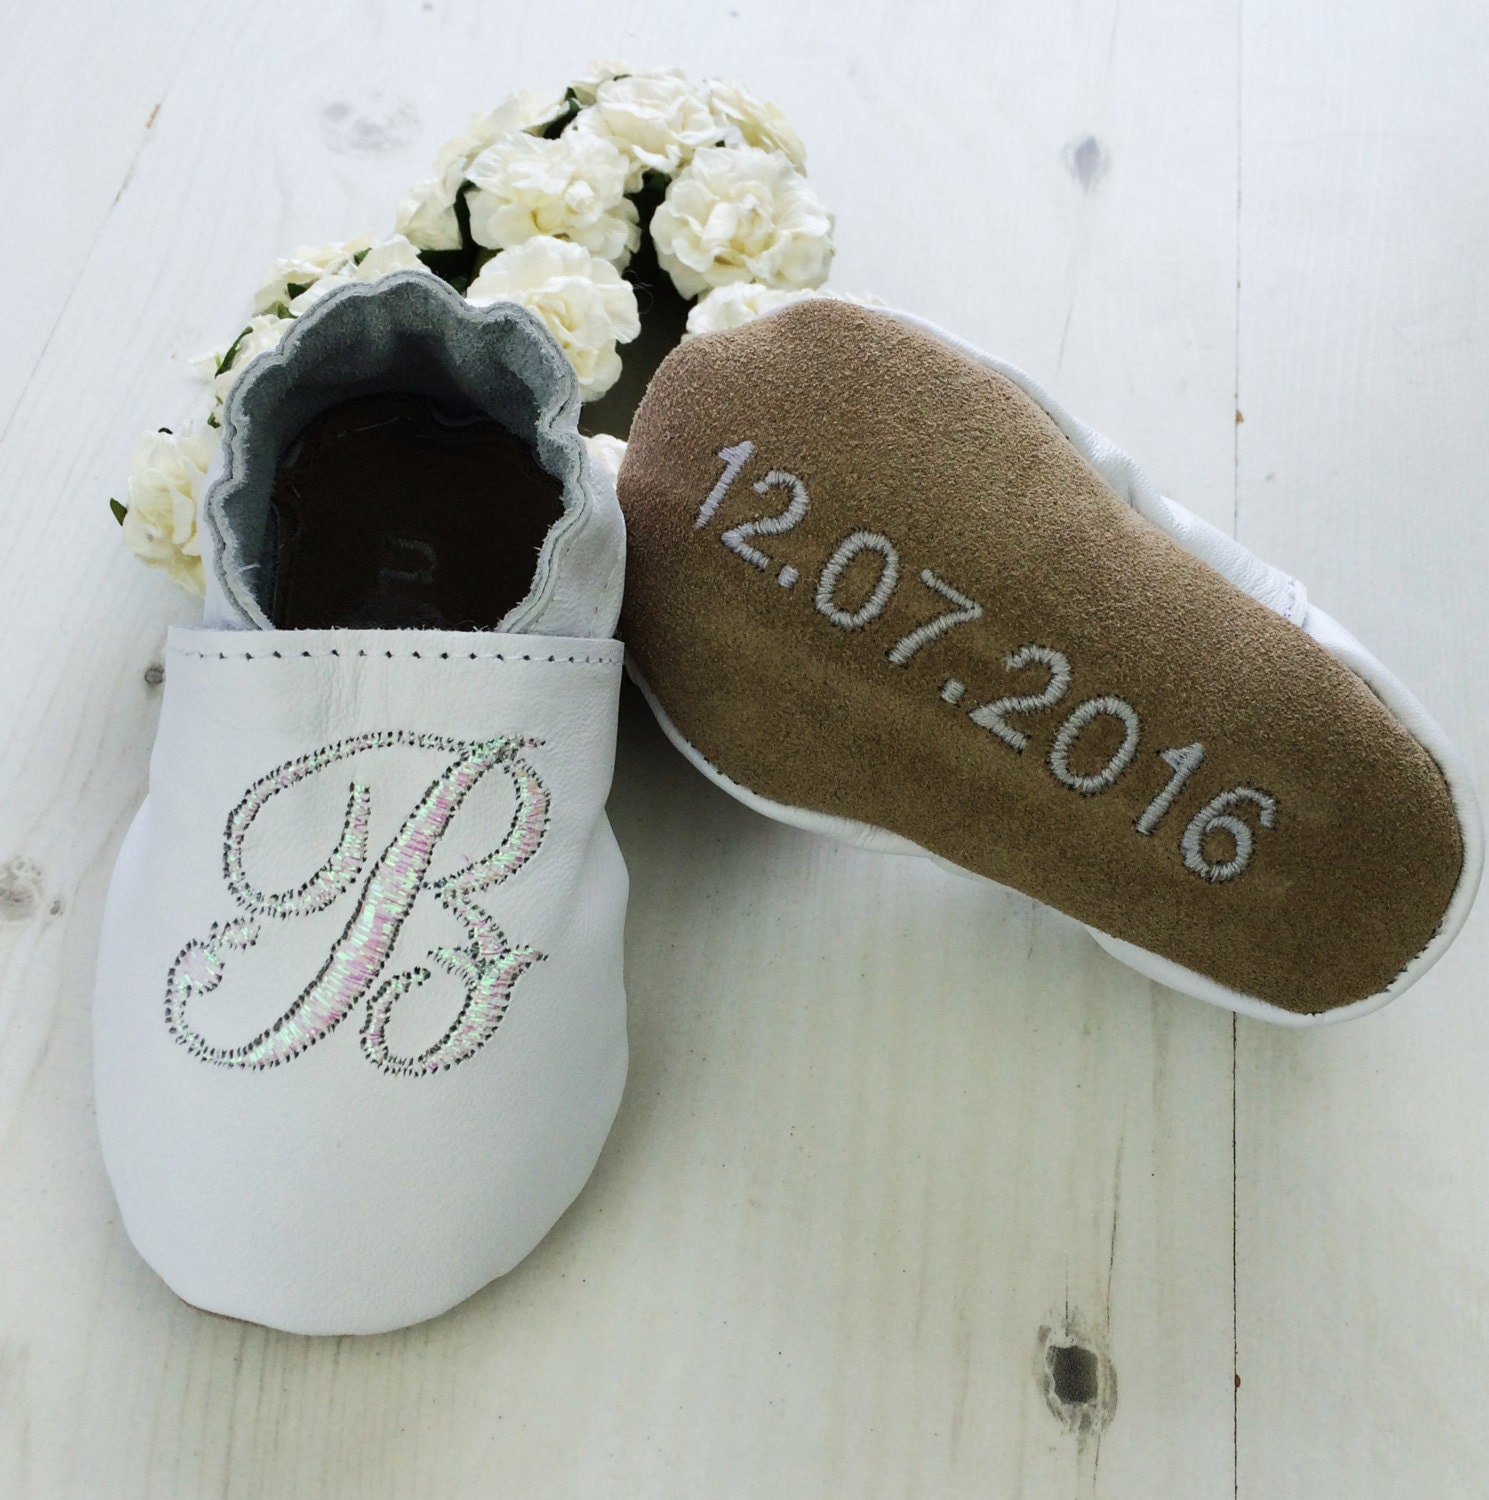 Baptism shoes  Iridescent  Personalized baptism shoes  Baptism gift  Christening gift  christening shoes  christening outfit